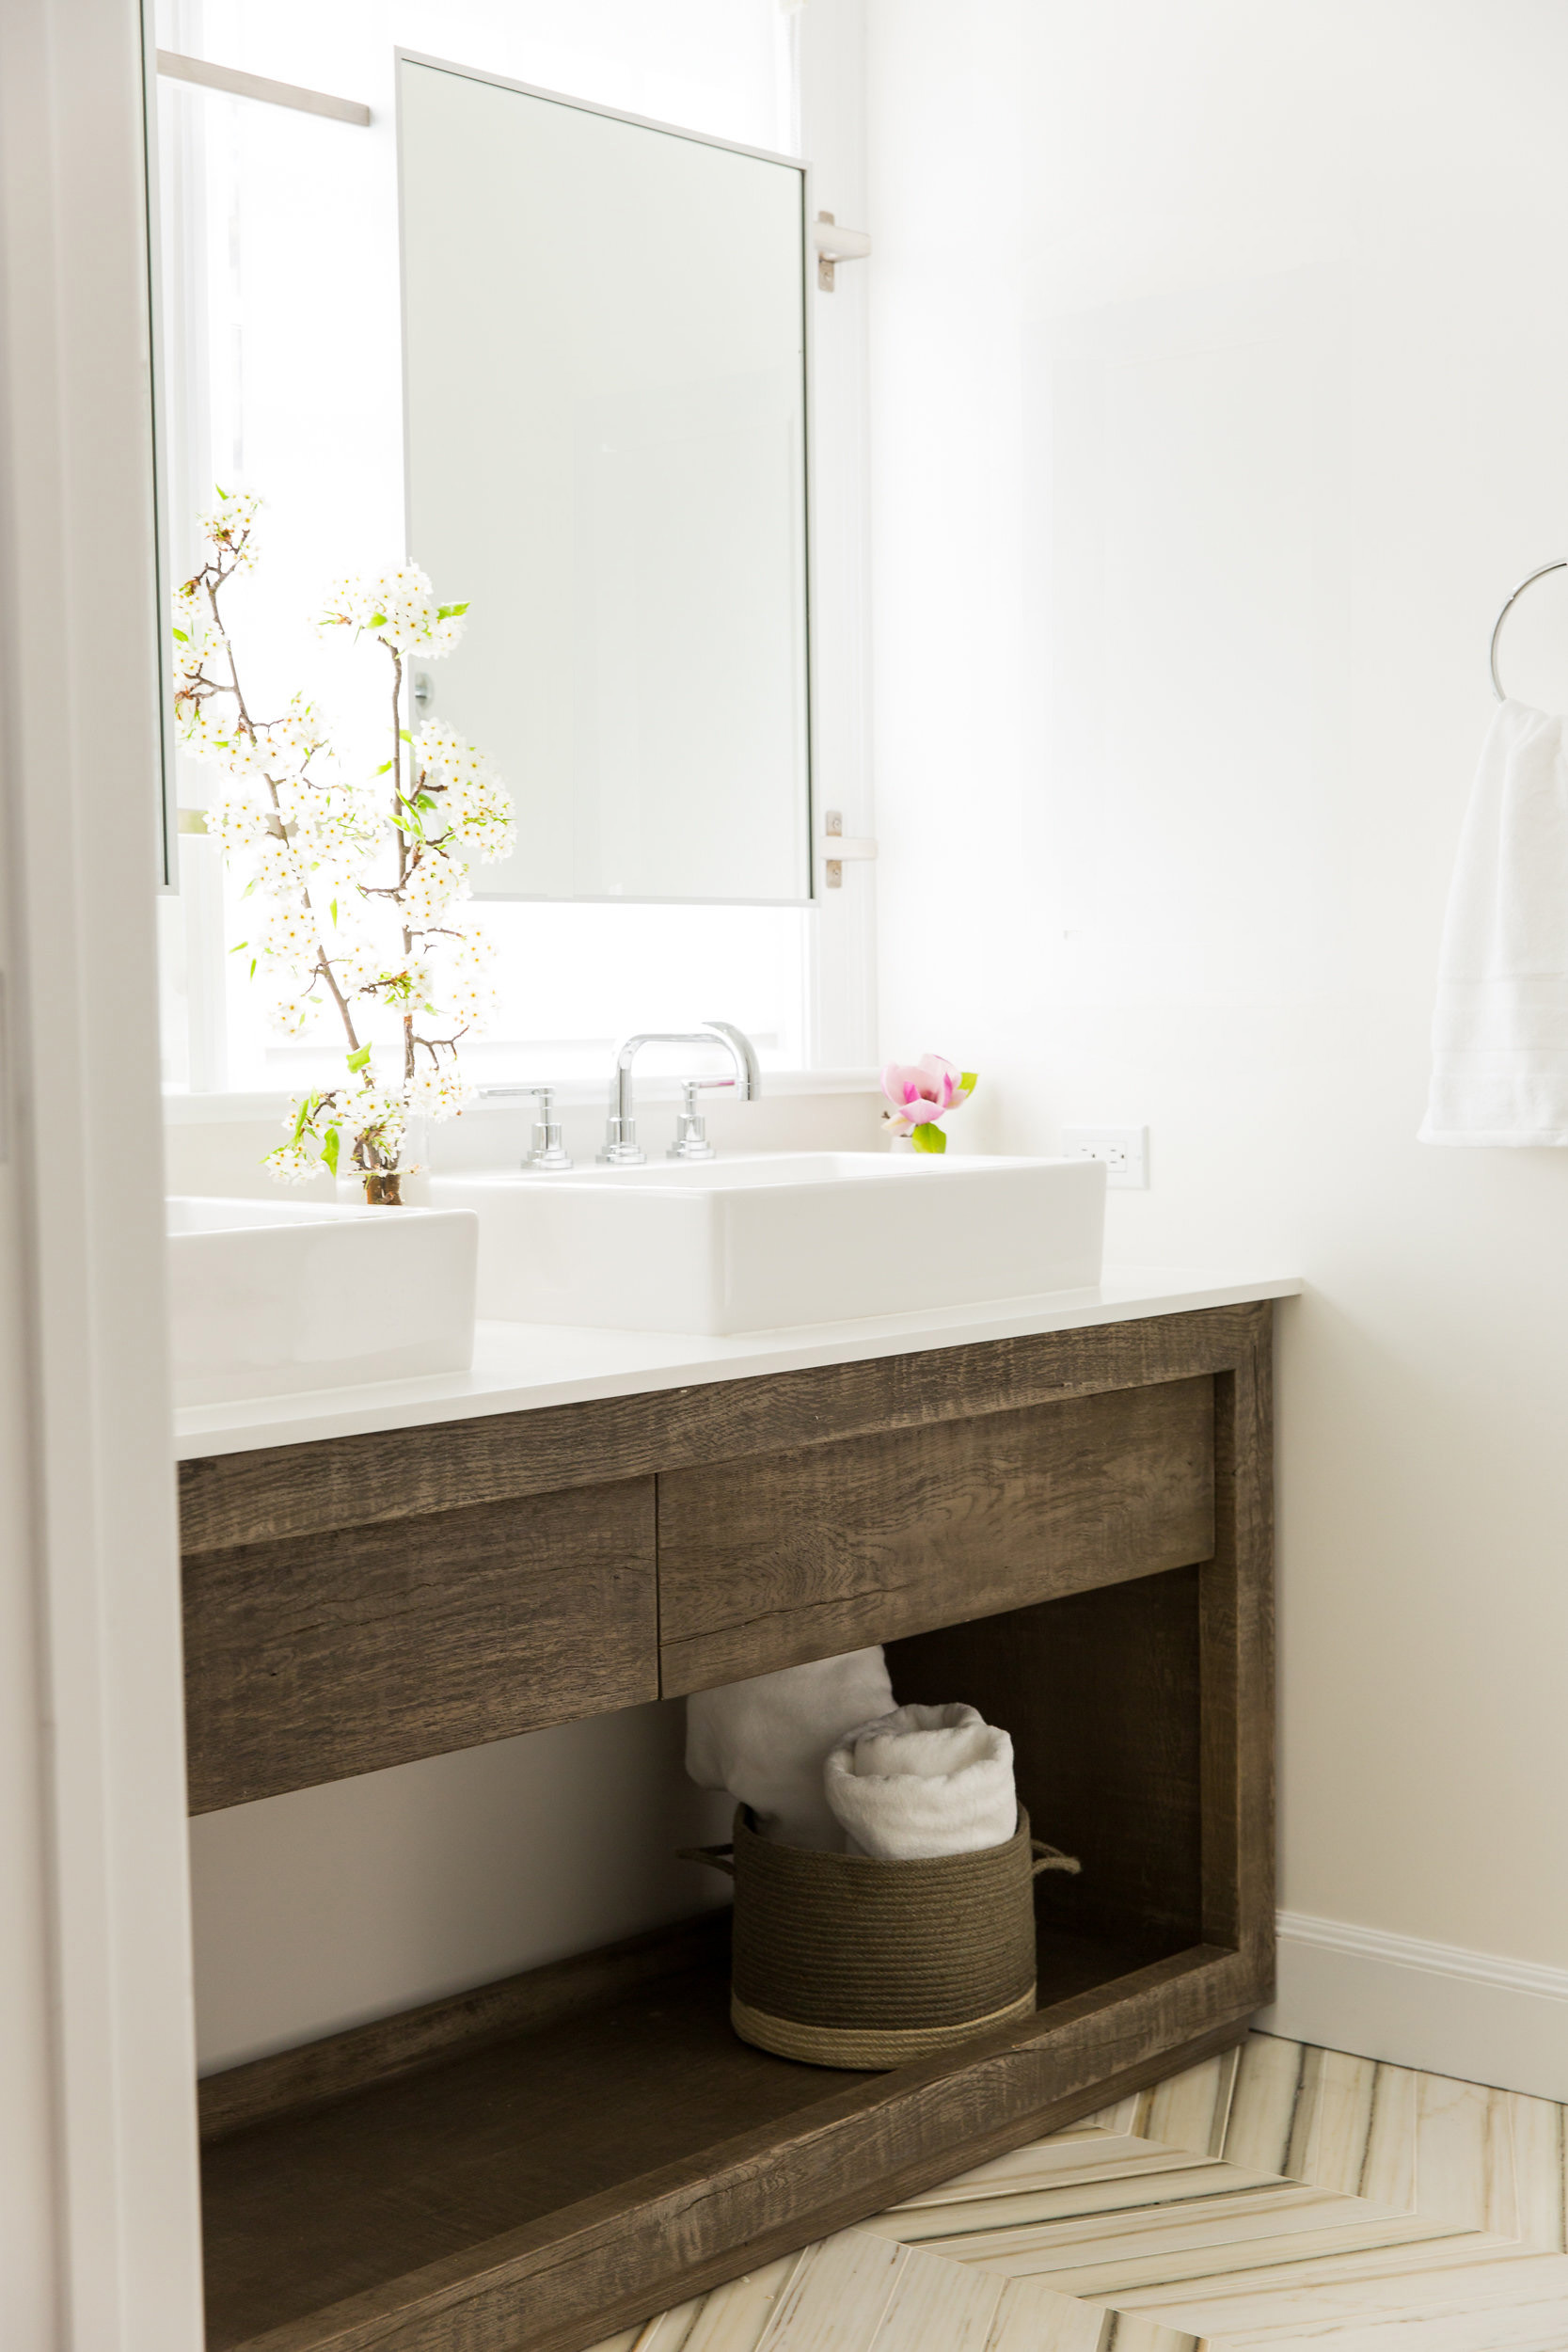 bathroom mirror in front of window chevron marble tile open storage above counter sink vessel